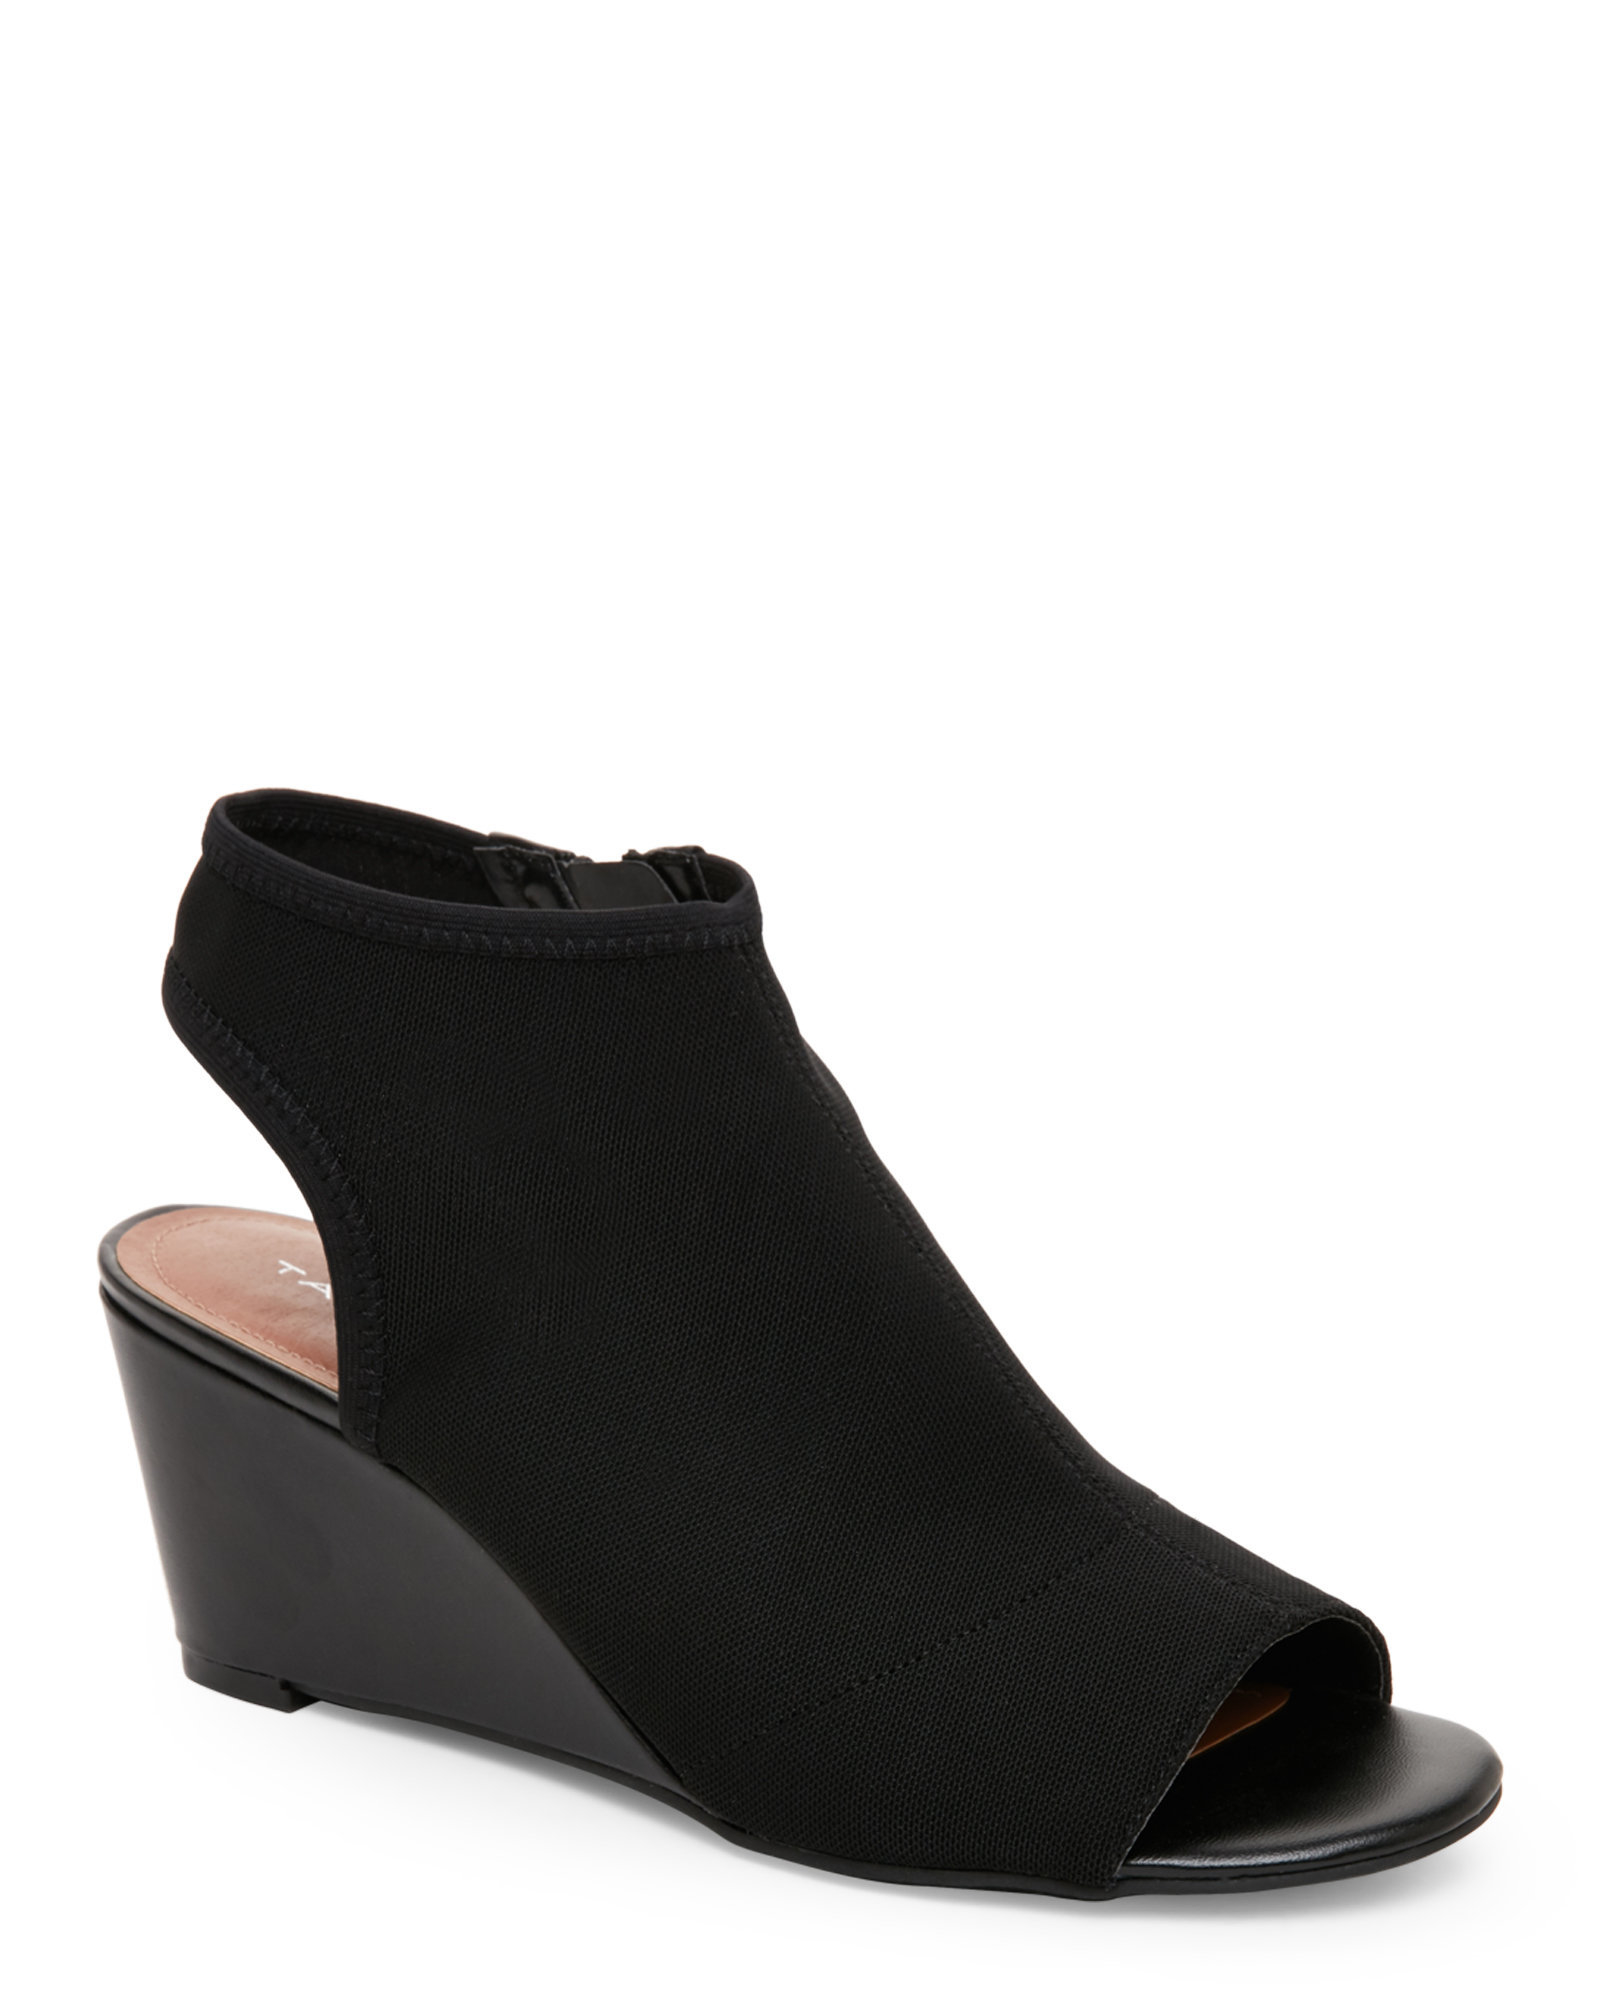 tahari black sindy open toe slingback wedge sandals in